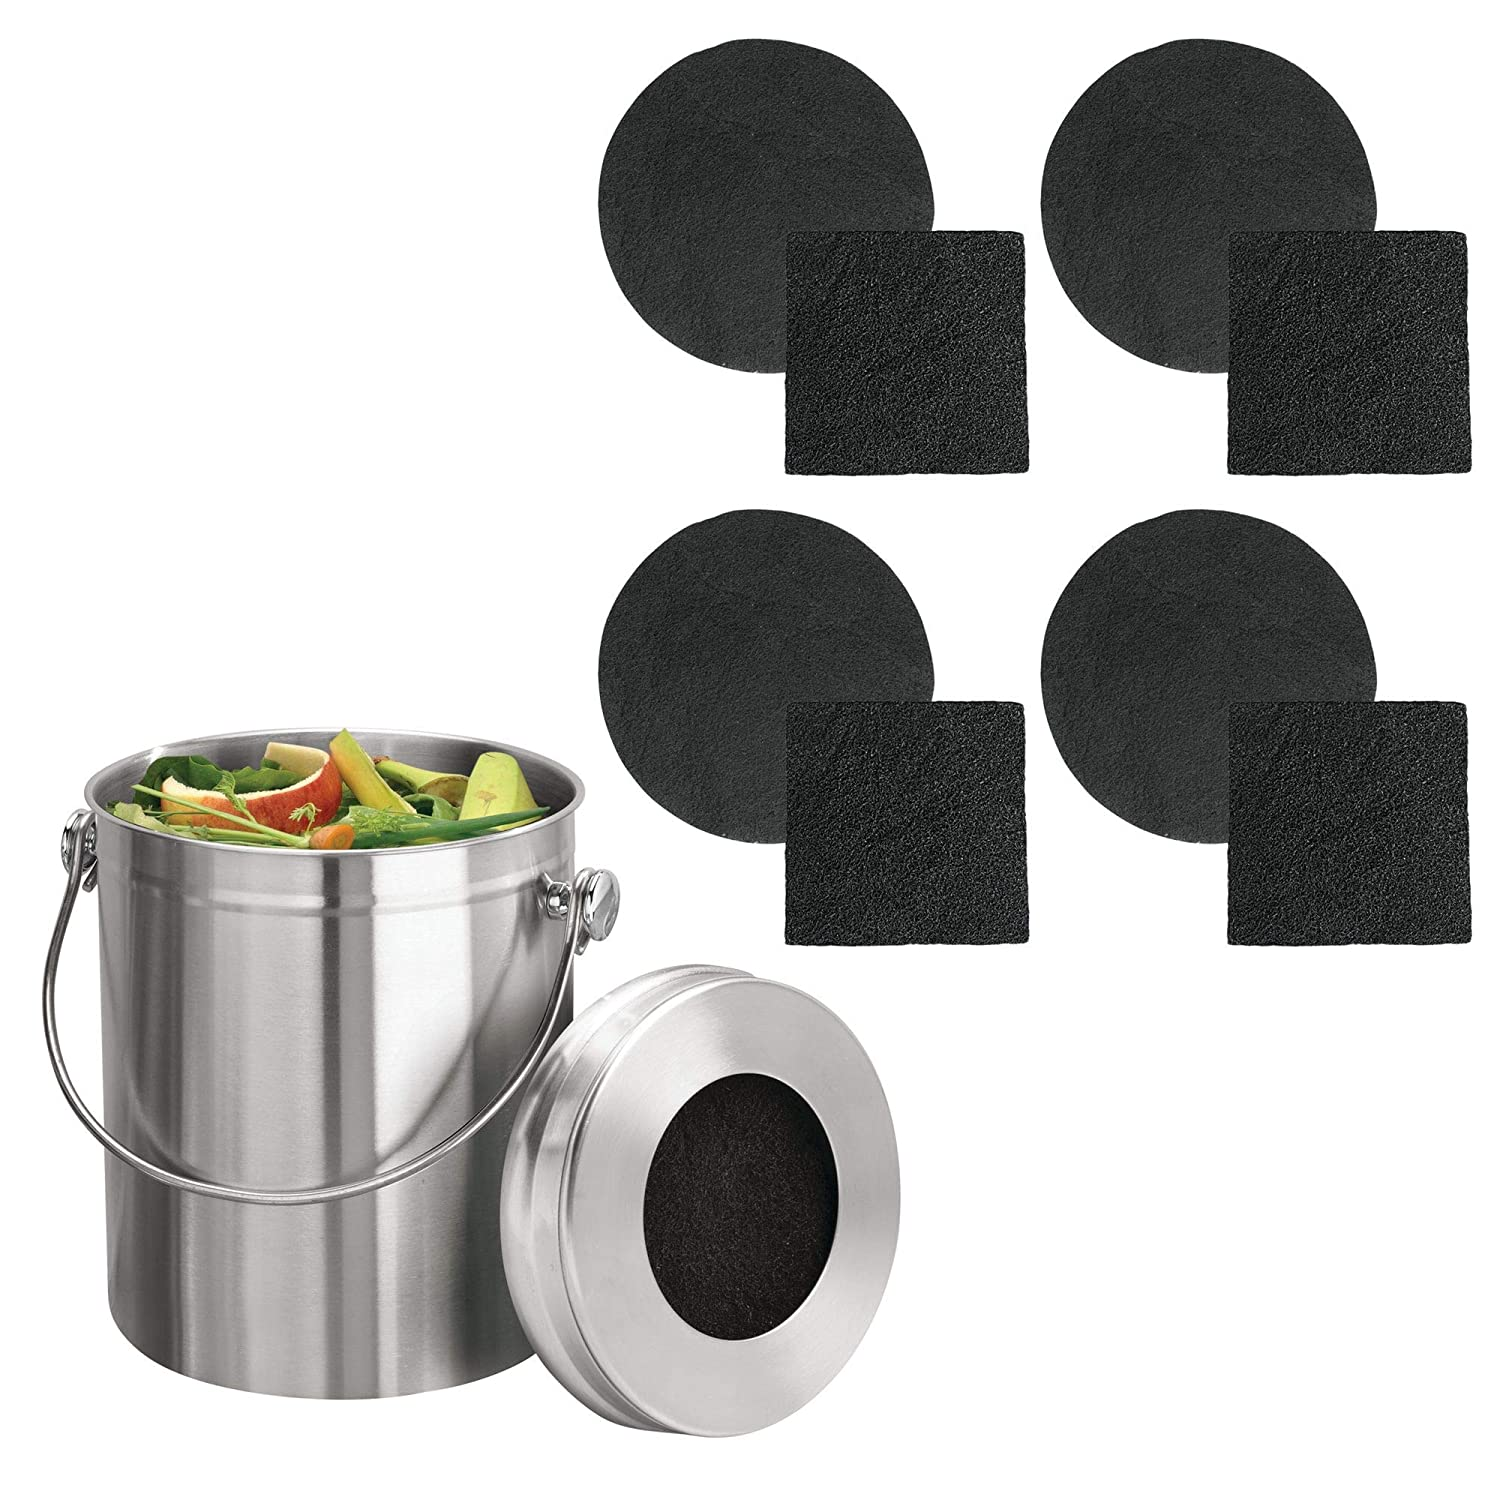 mDesign Stainless Steel Compost Pail Bin with Handle for Kitchen Countertops and Under Sink � 1.3 Gallon Capacity � Double Filtration System � Charcoal Filters Included - Brushed Stainless Steel MetroDecor